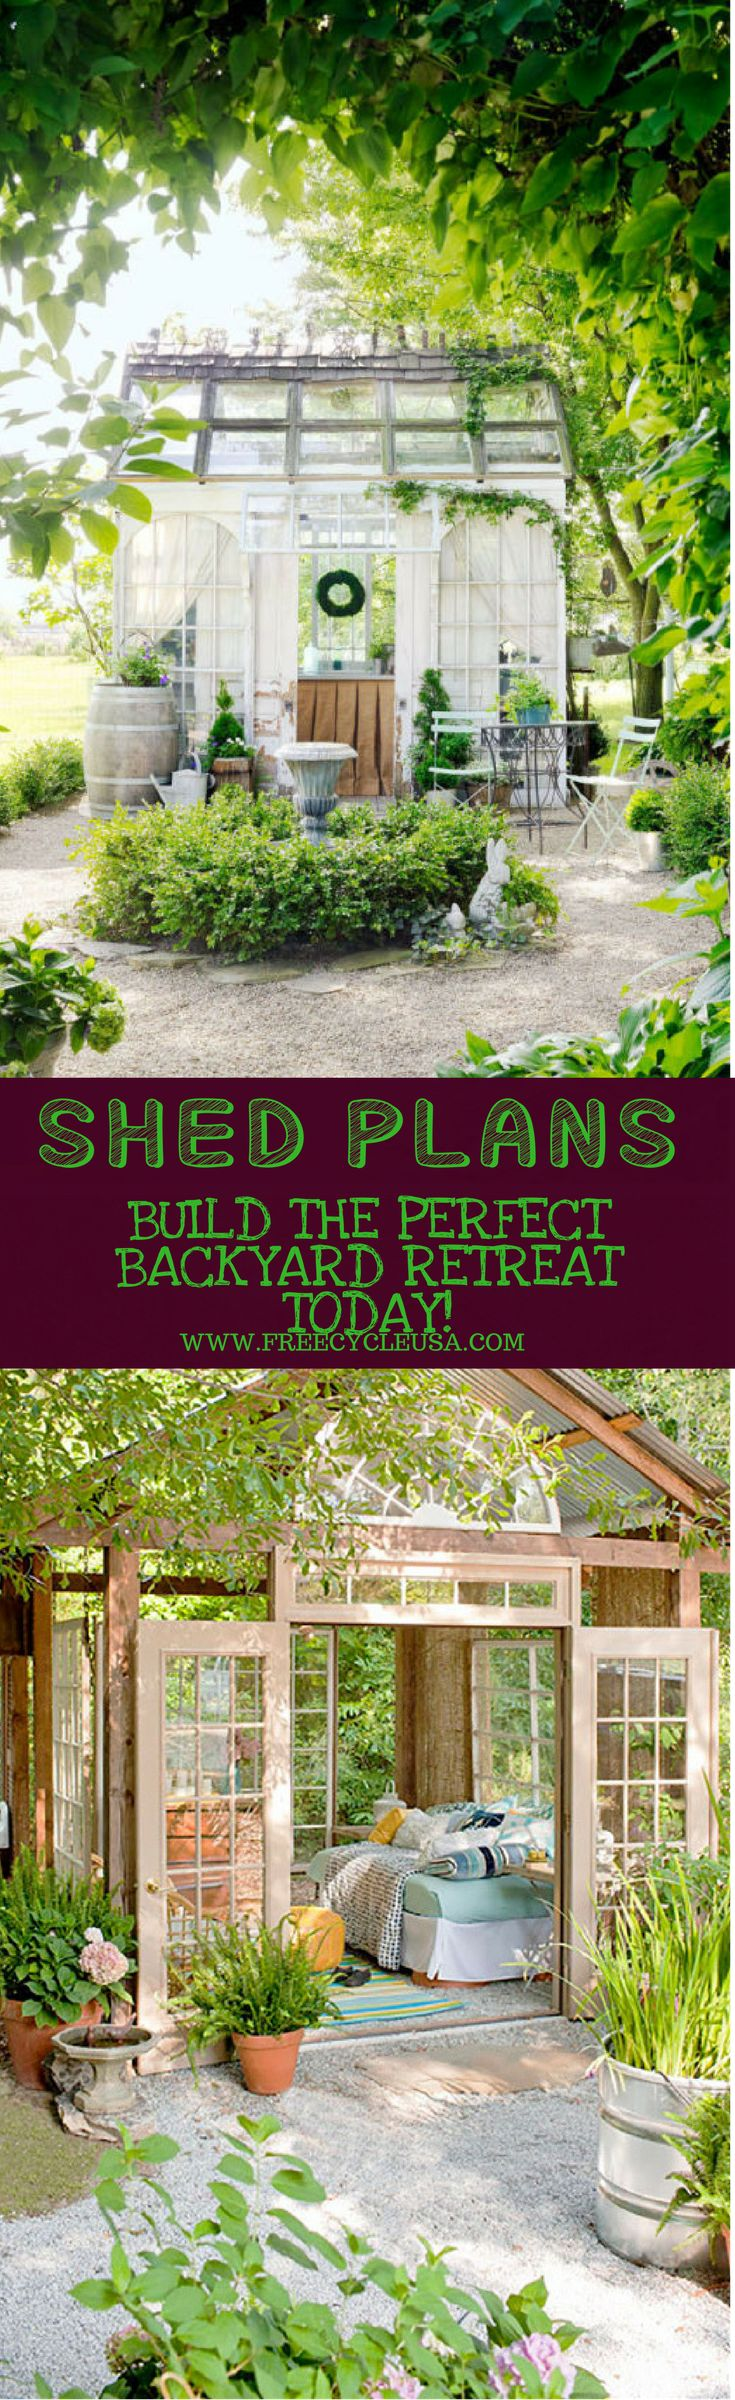 8205 cornwall - Diy Best Shed Plans